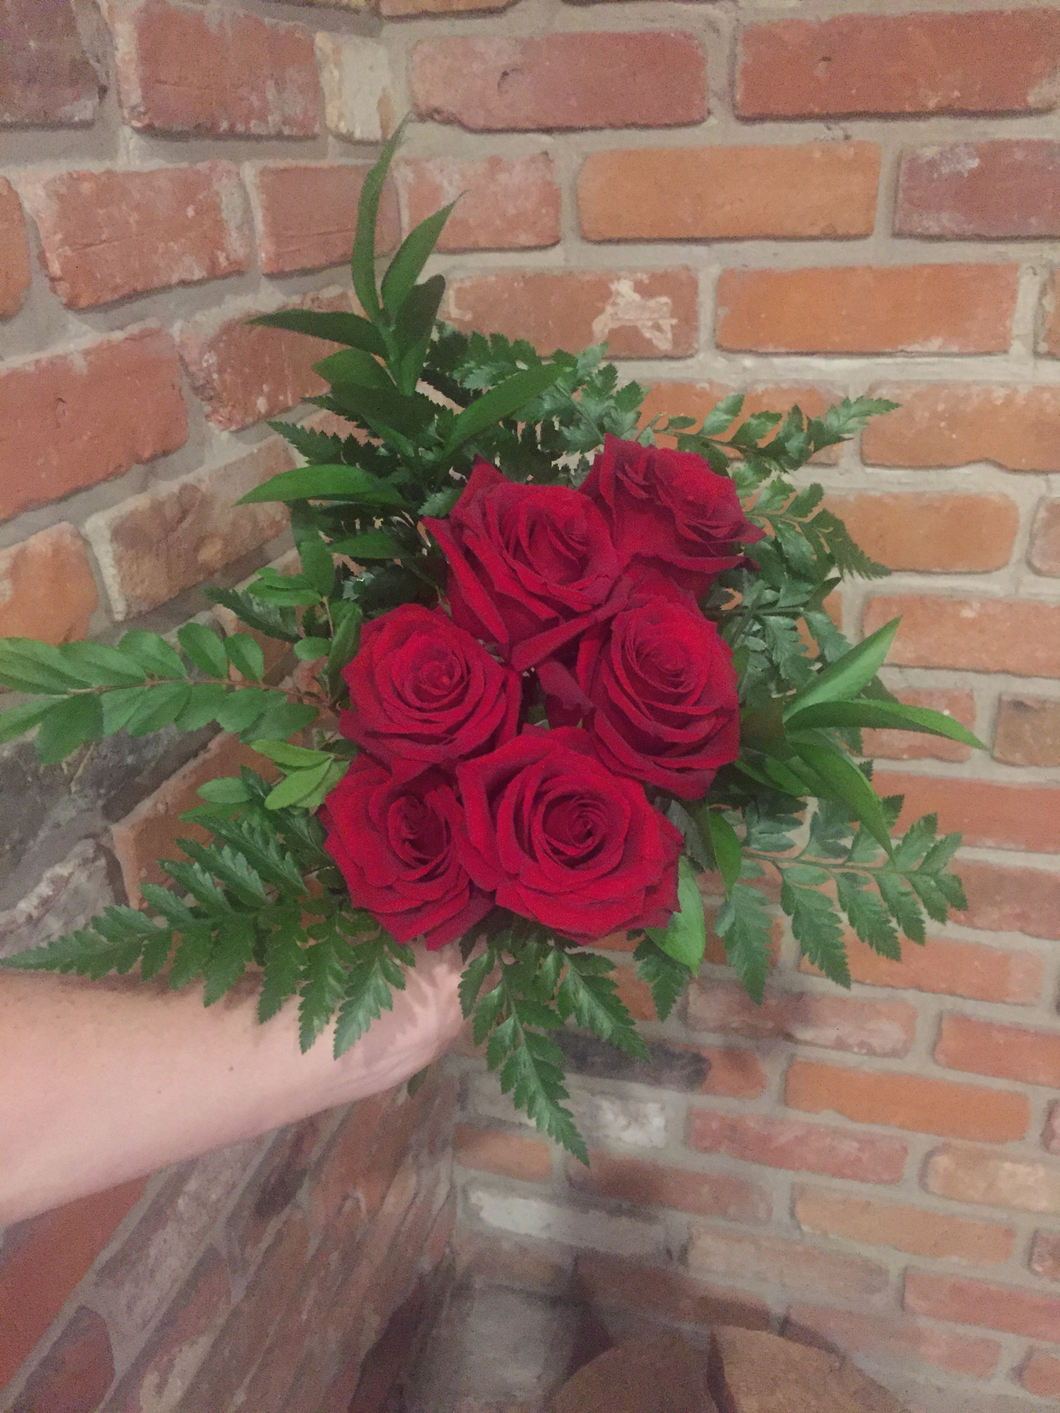 Half dozen of our premium Explorer Red Roses hand tied with an assortment of foliages ready for your recipient to drop in their vase!